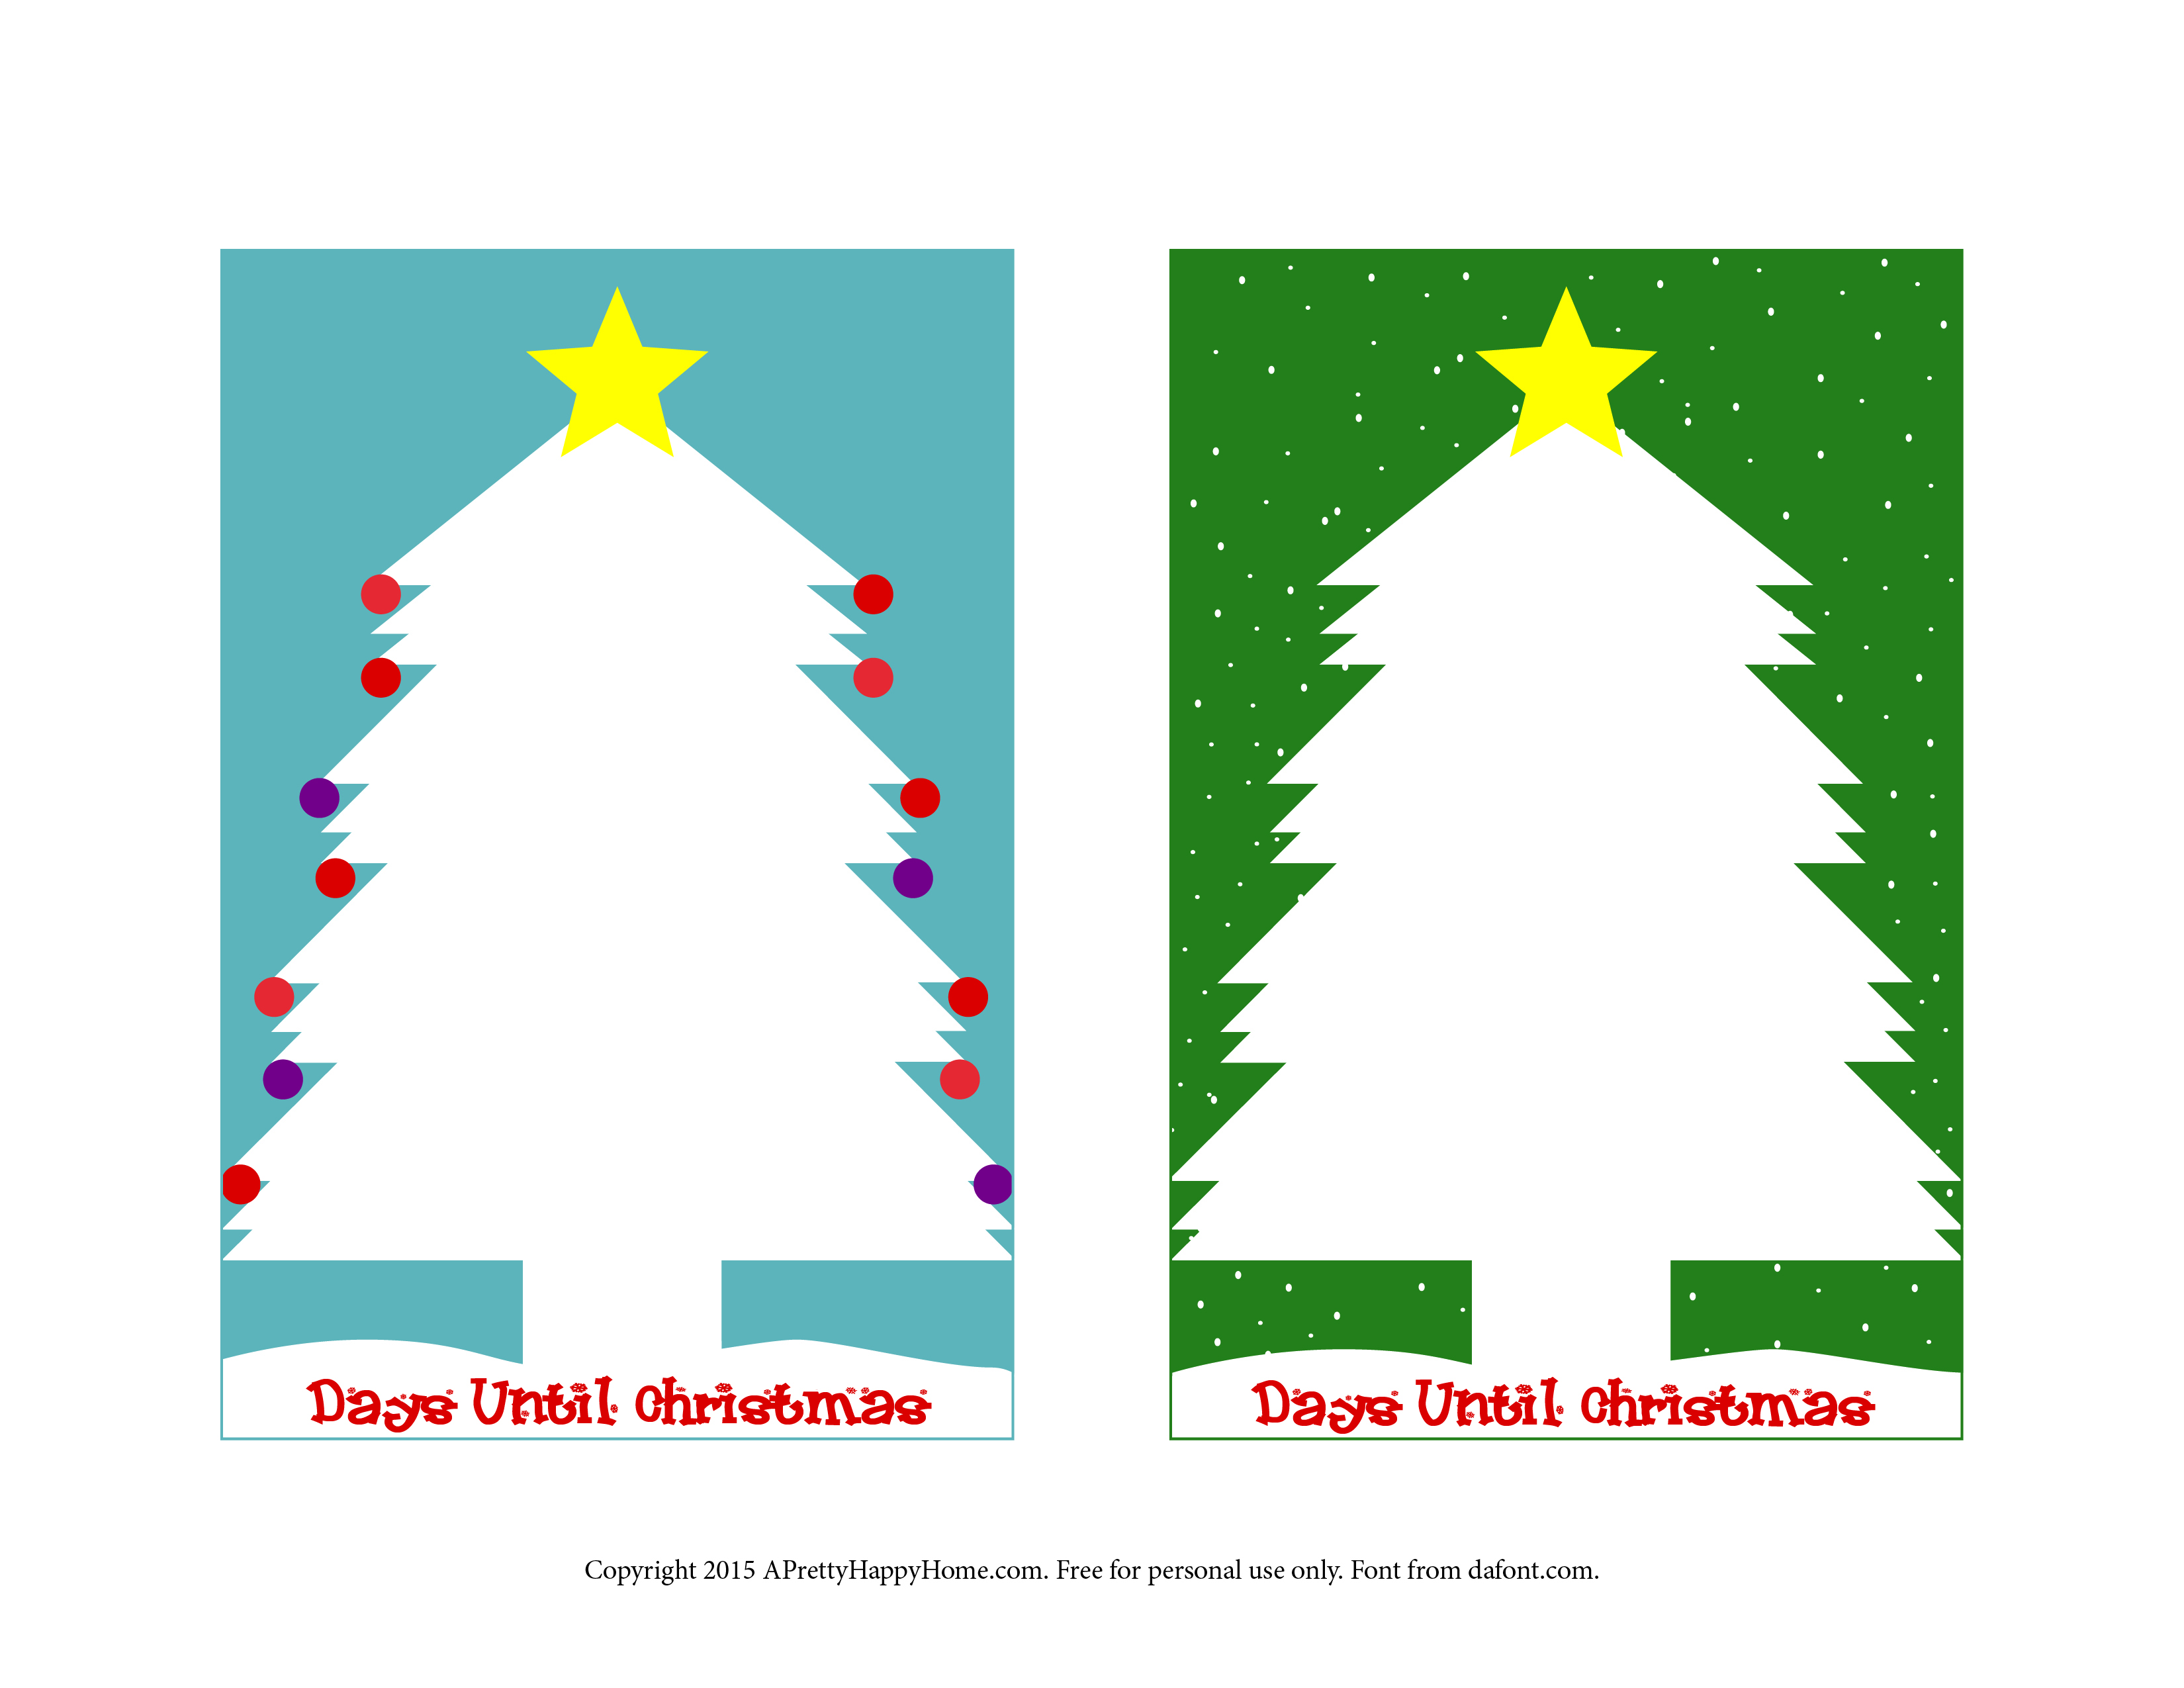 Days Until Christmas Printable.Christmas Countdown Lunch Notes Free Printable A Pretty